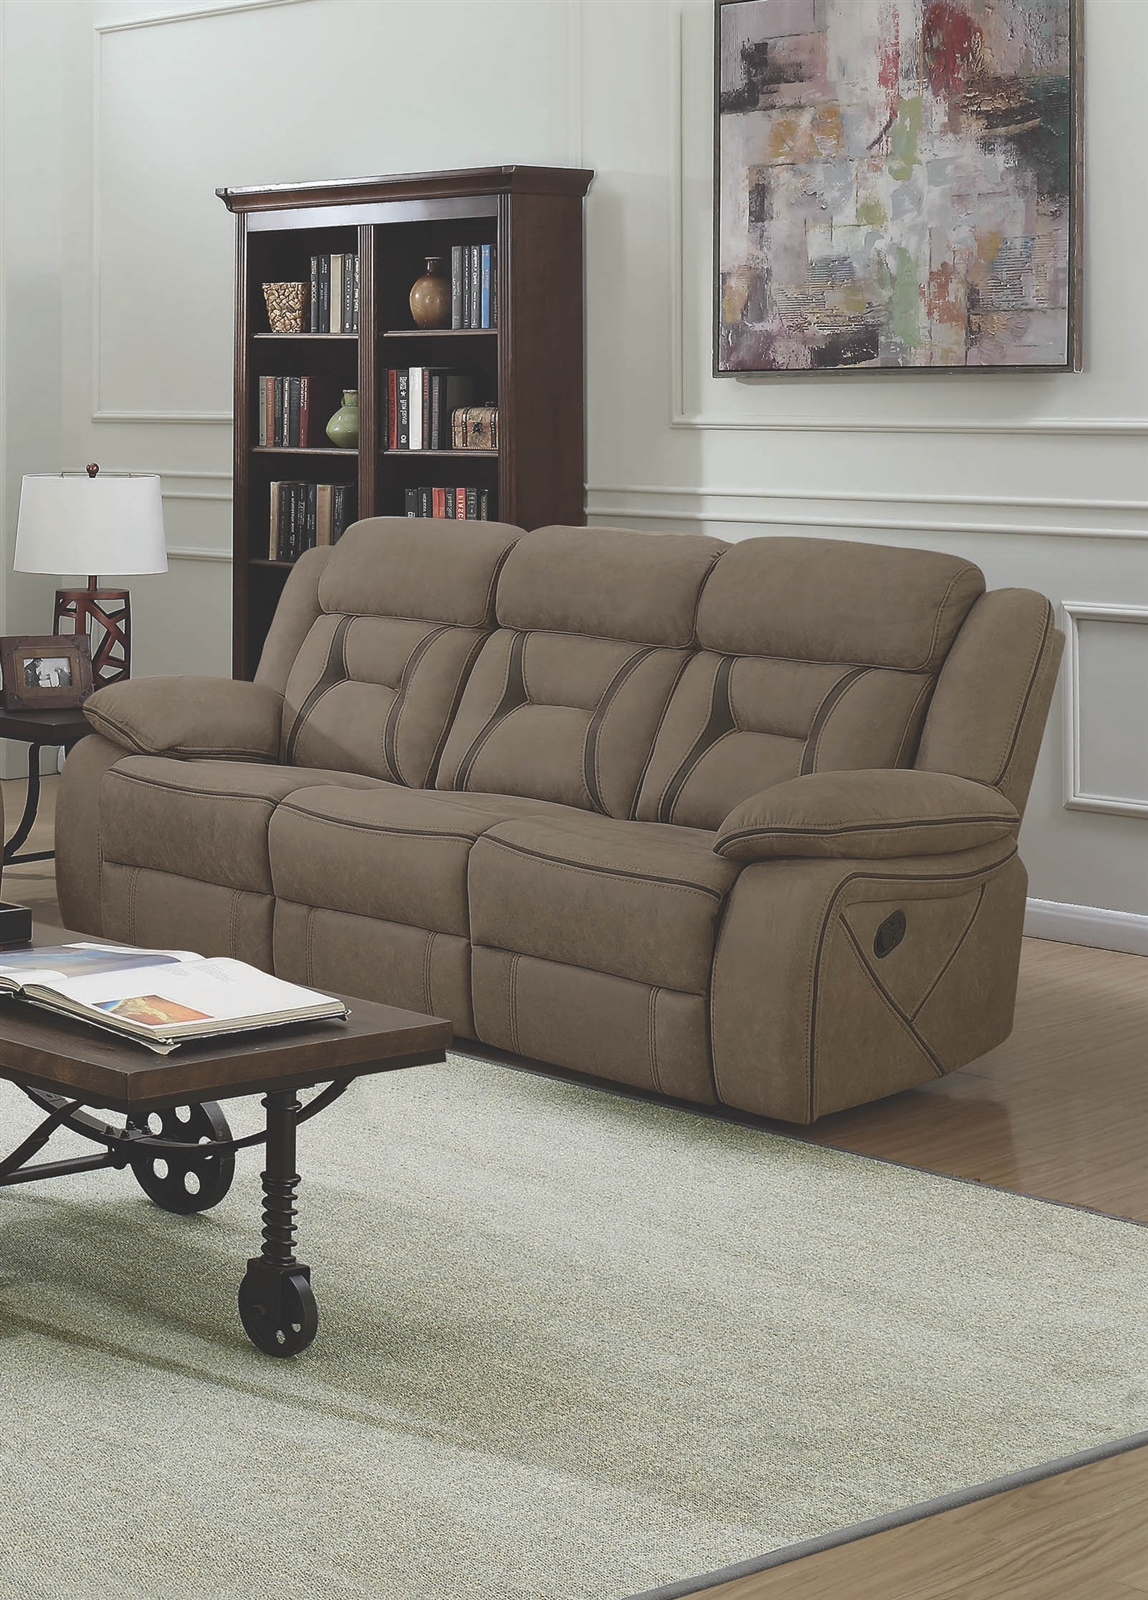 Coated Microfiber Reclining Sofa Larger Photo Email A Friend